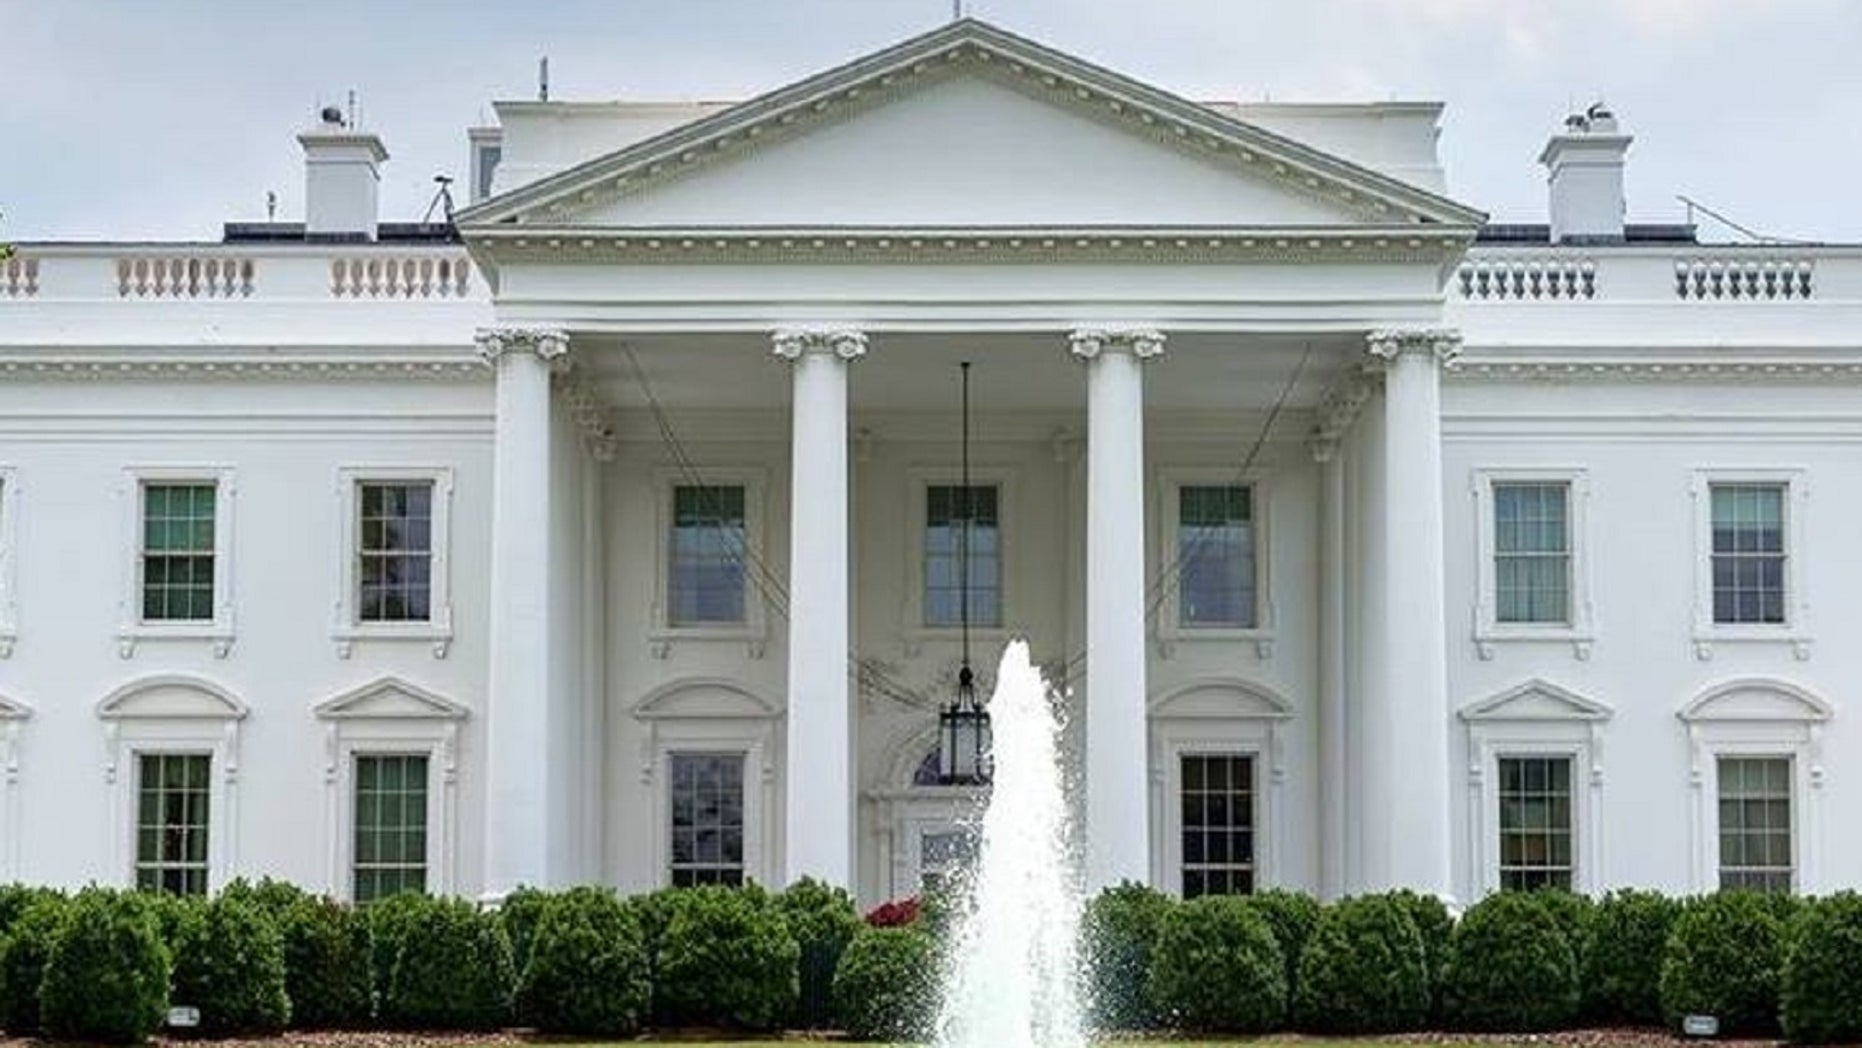 A man allegedly struck a U.S. Secret Service officer outside the White House on Monday. (Facebook via White House)